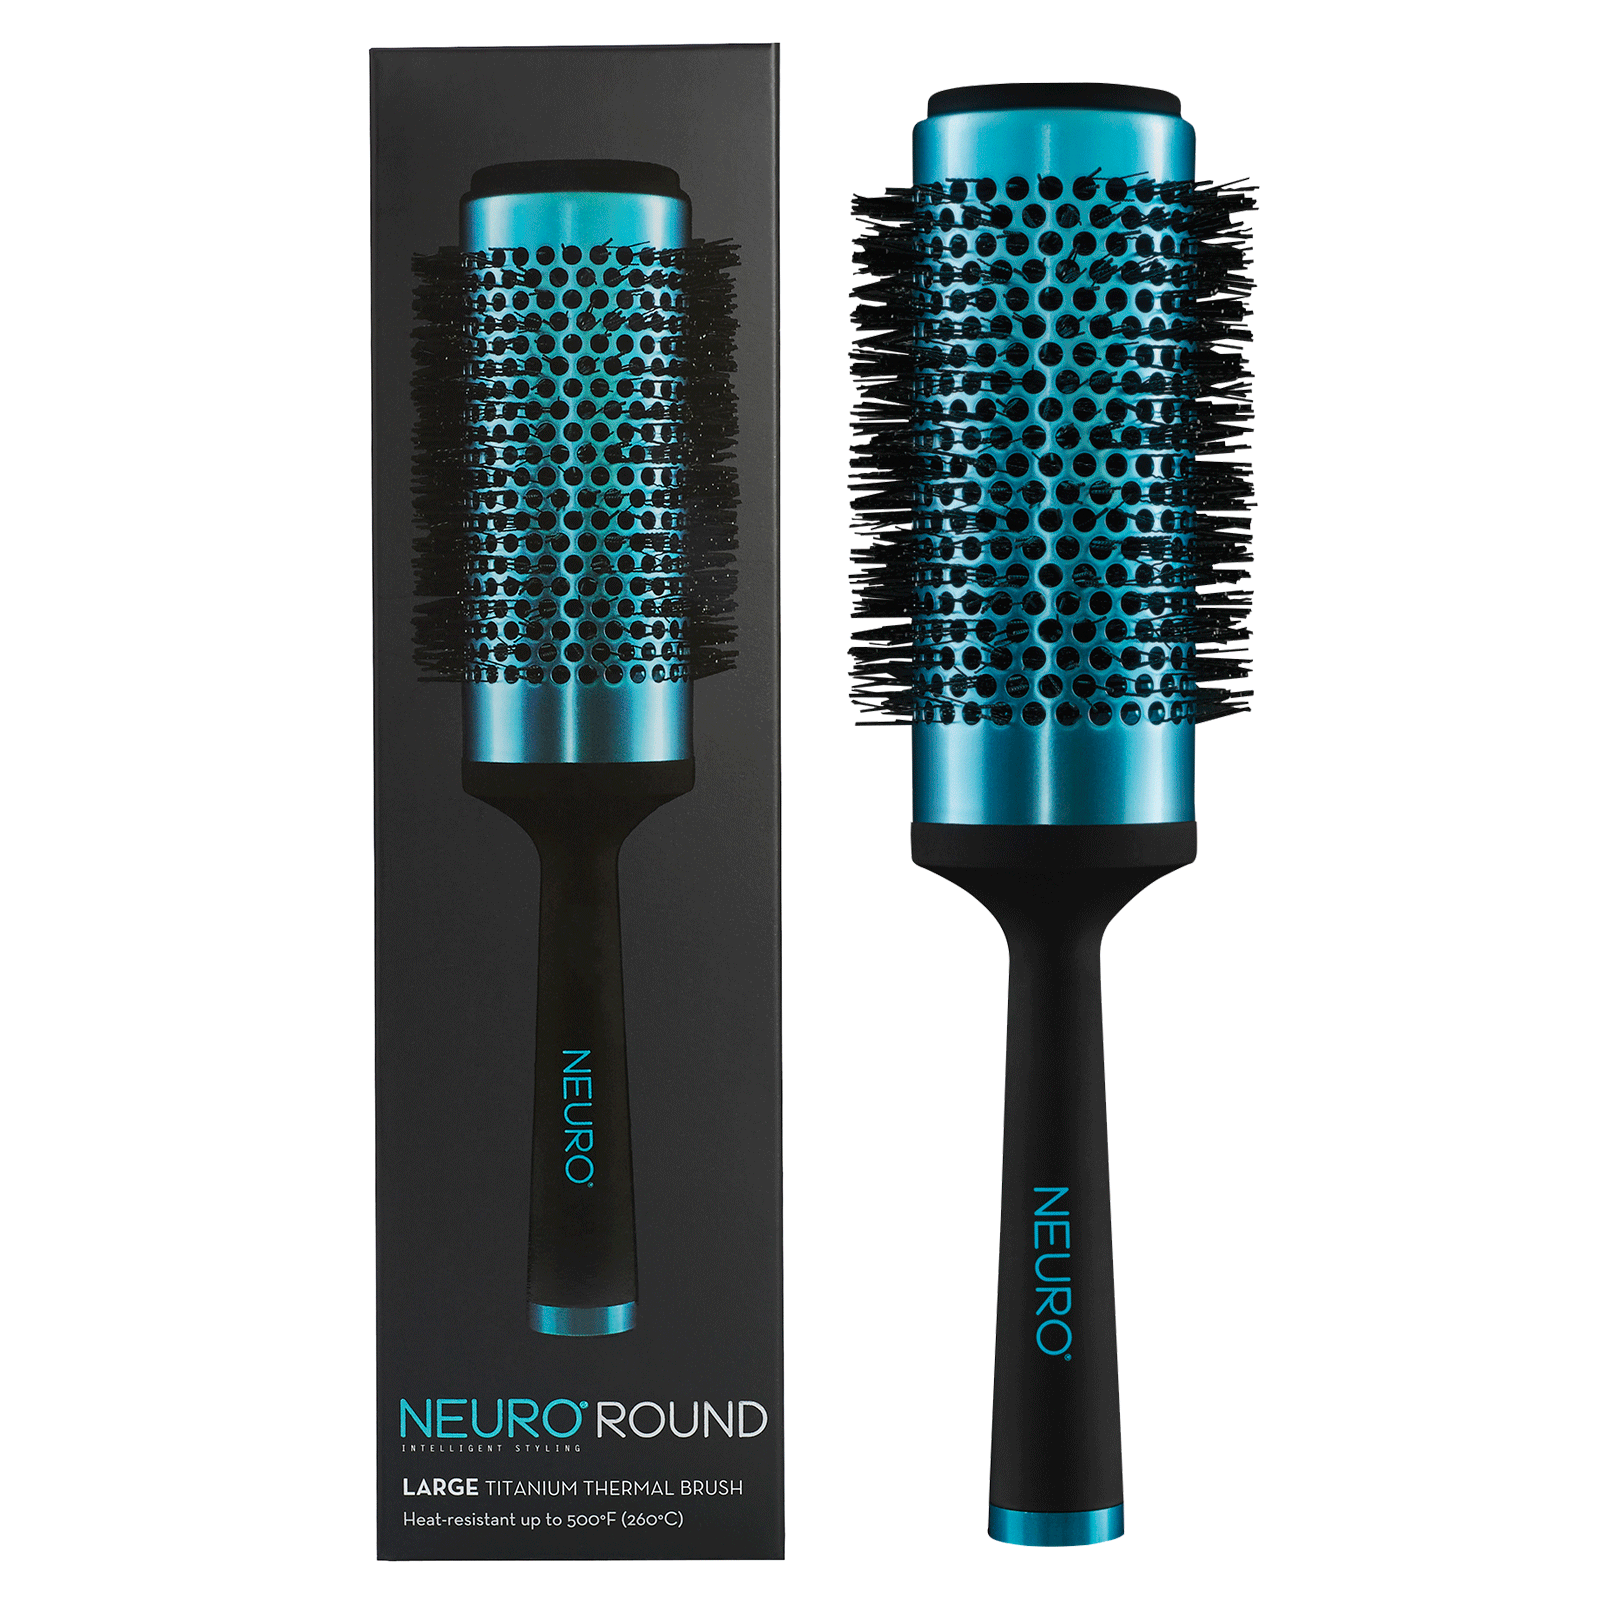 Neuro round titanium thermal brush   large